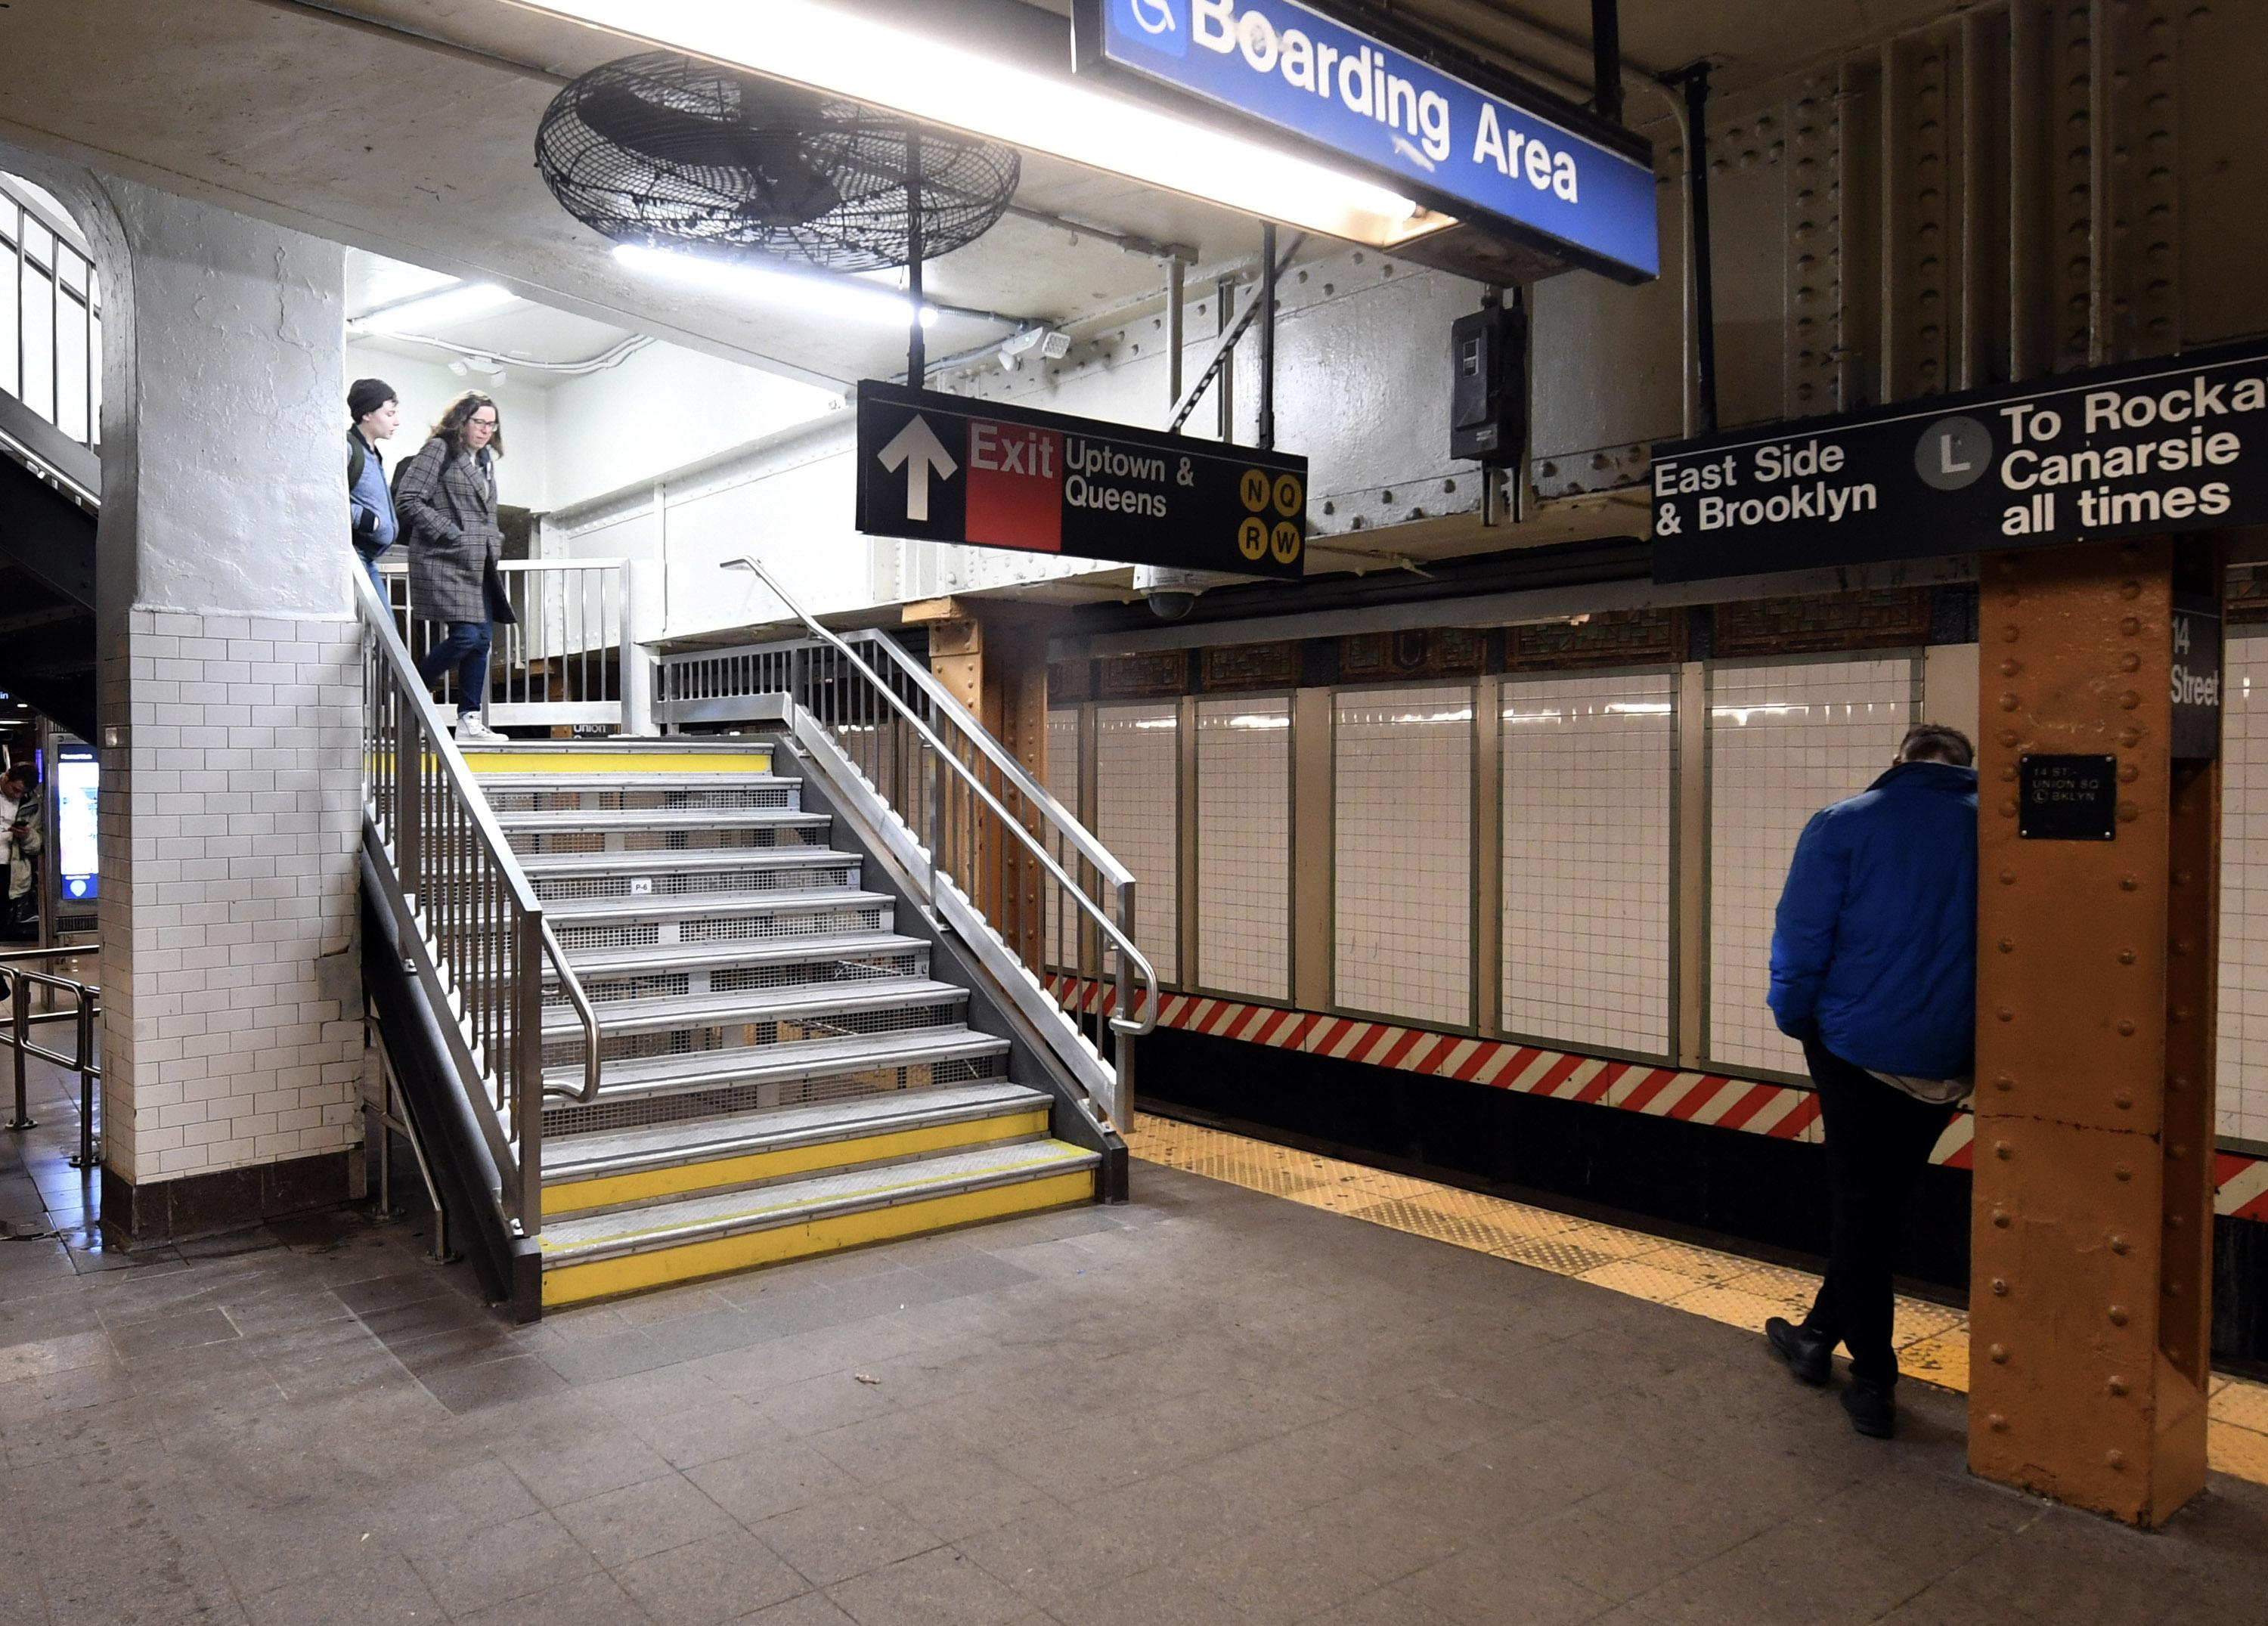 A man leans against a column on a subway station platform as two women walk down the stairs to his left. Several signs are visible, including one for trains on the current platform, one for a wheelchair boarding area, and one for an exit and other train lines.